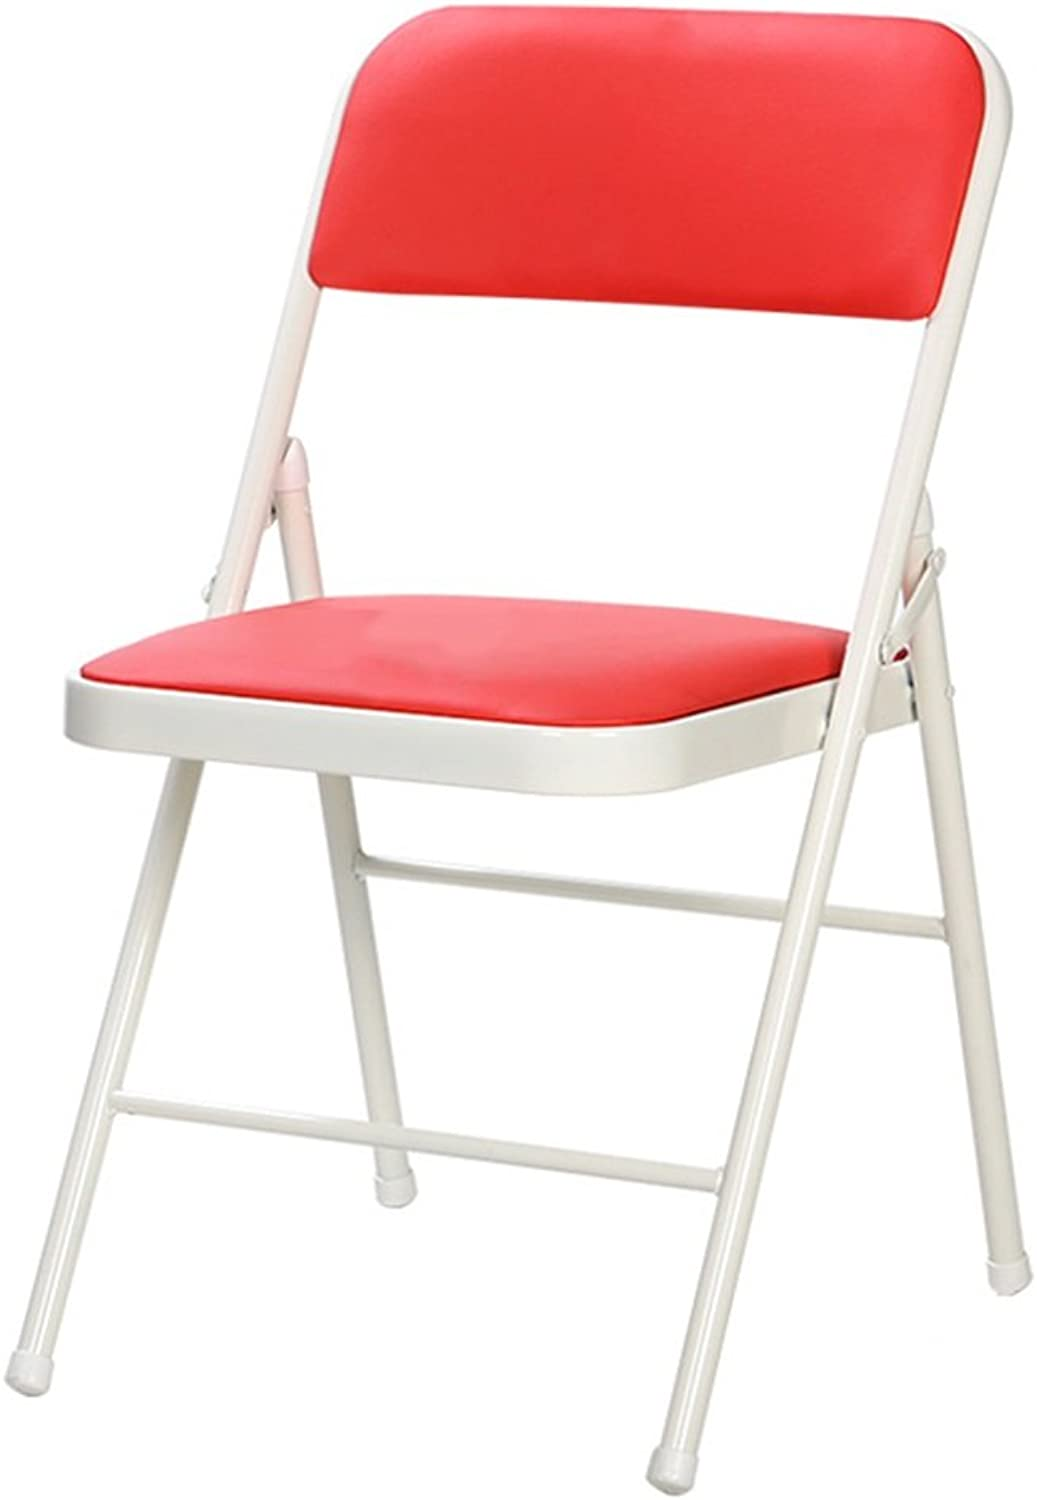 Chair Stool Folding Office Computer Chair Ergonomic for Meeting Room Fishing (color   Red)